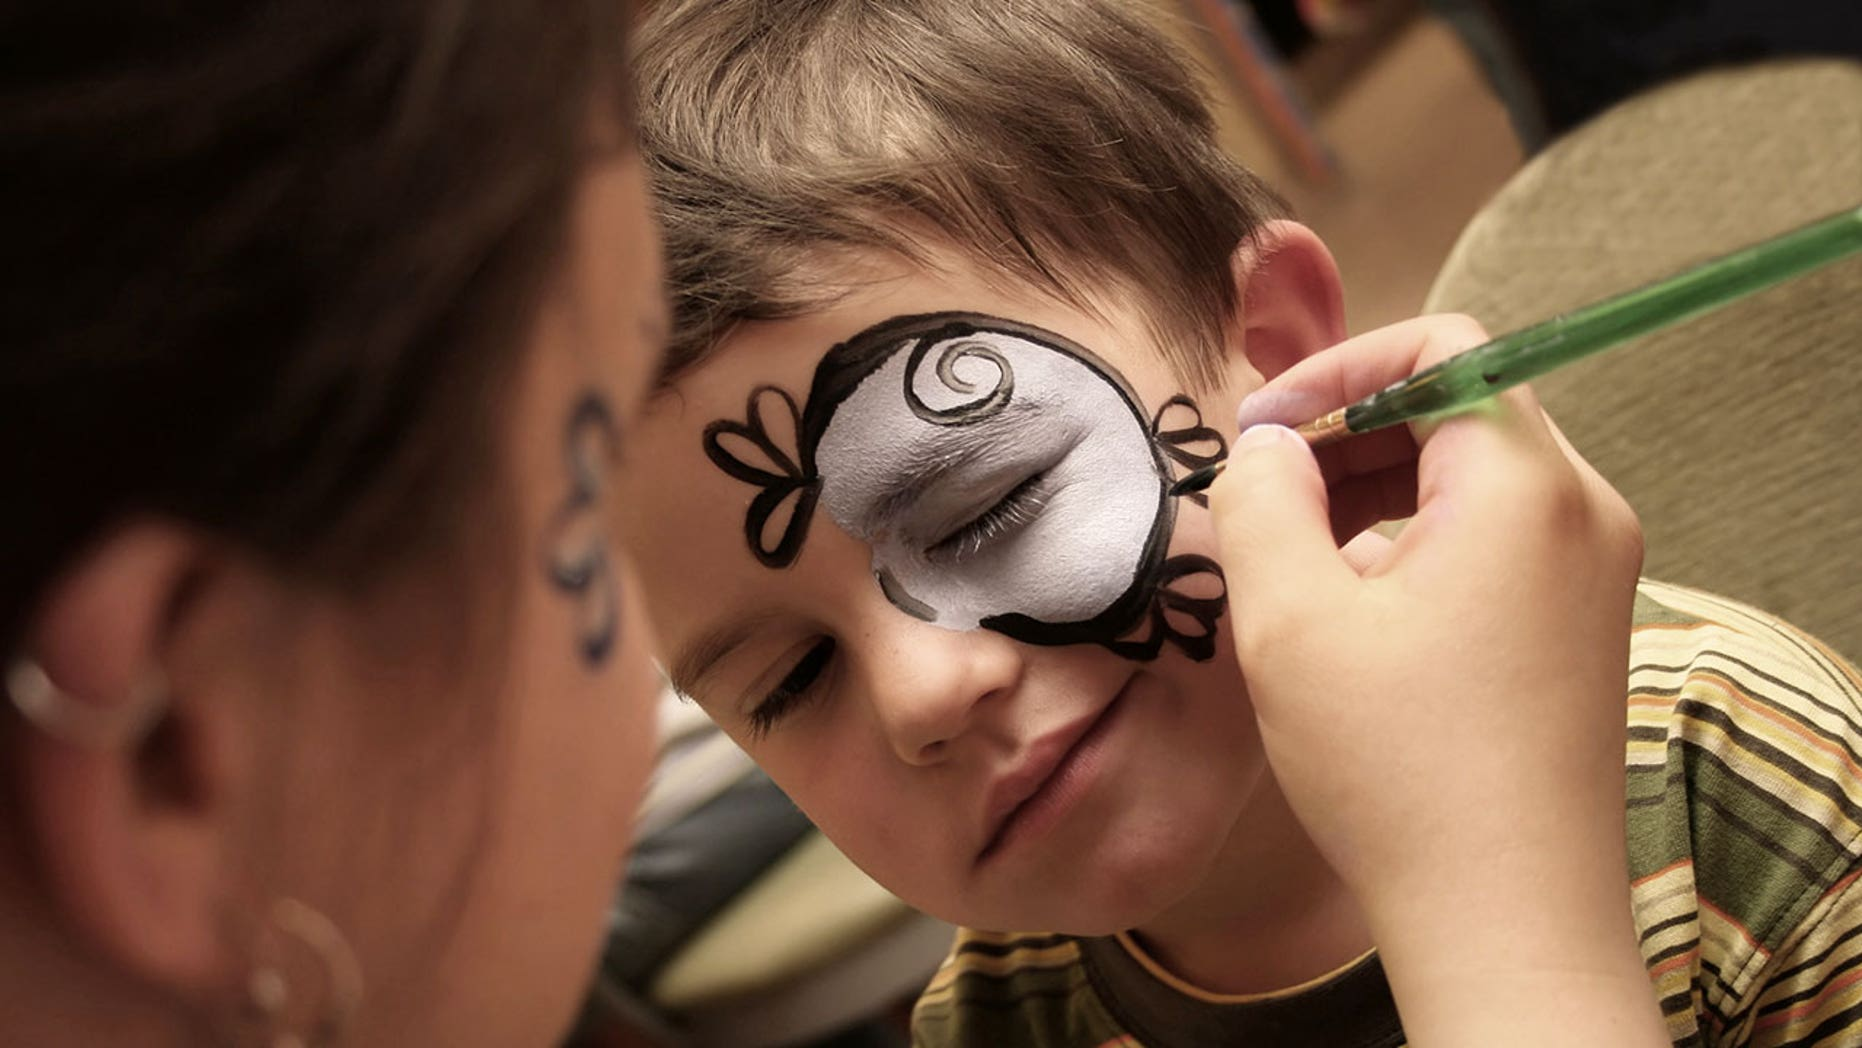 A mom in Australia took to Facebook last week to warn fellow parents about the dangers of Halloween makeup kits.